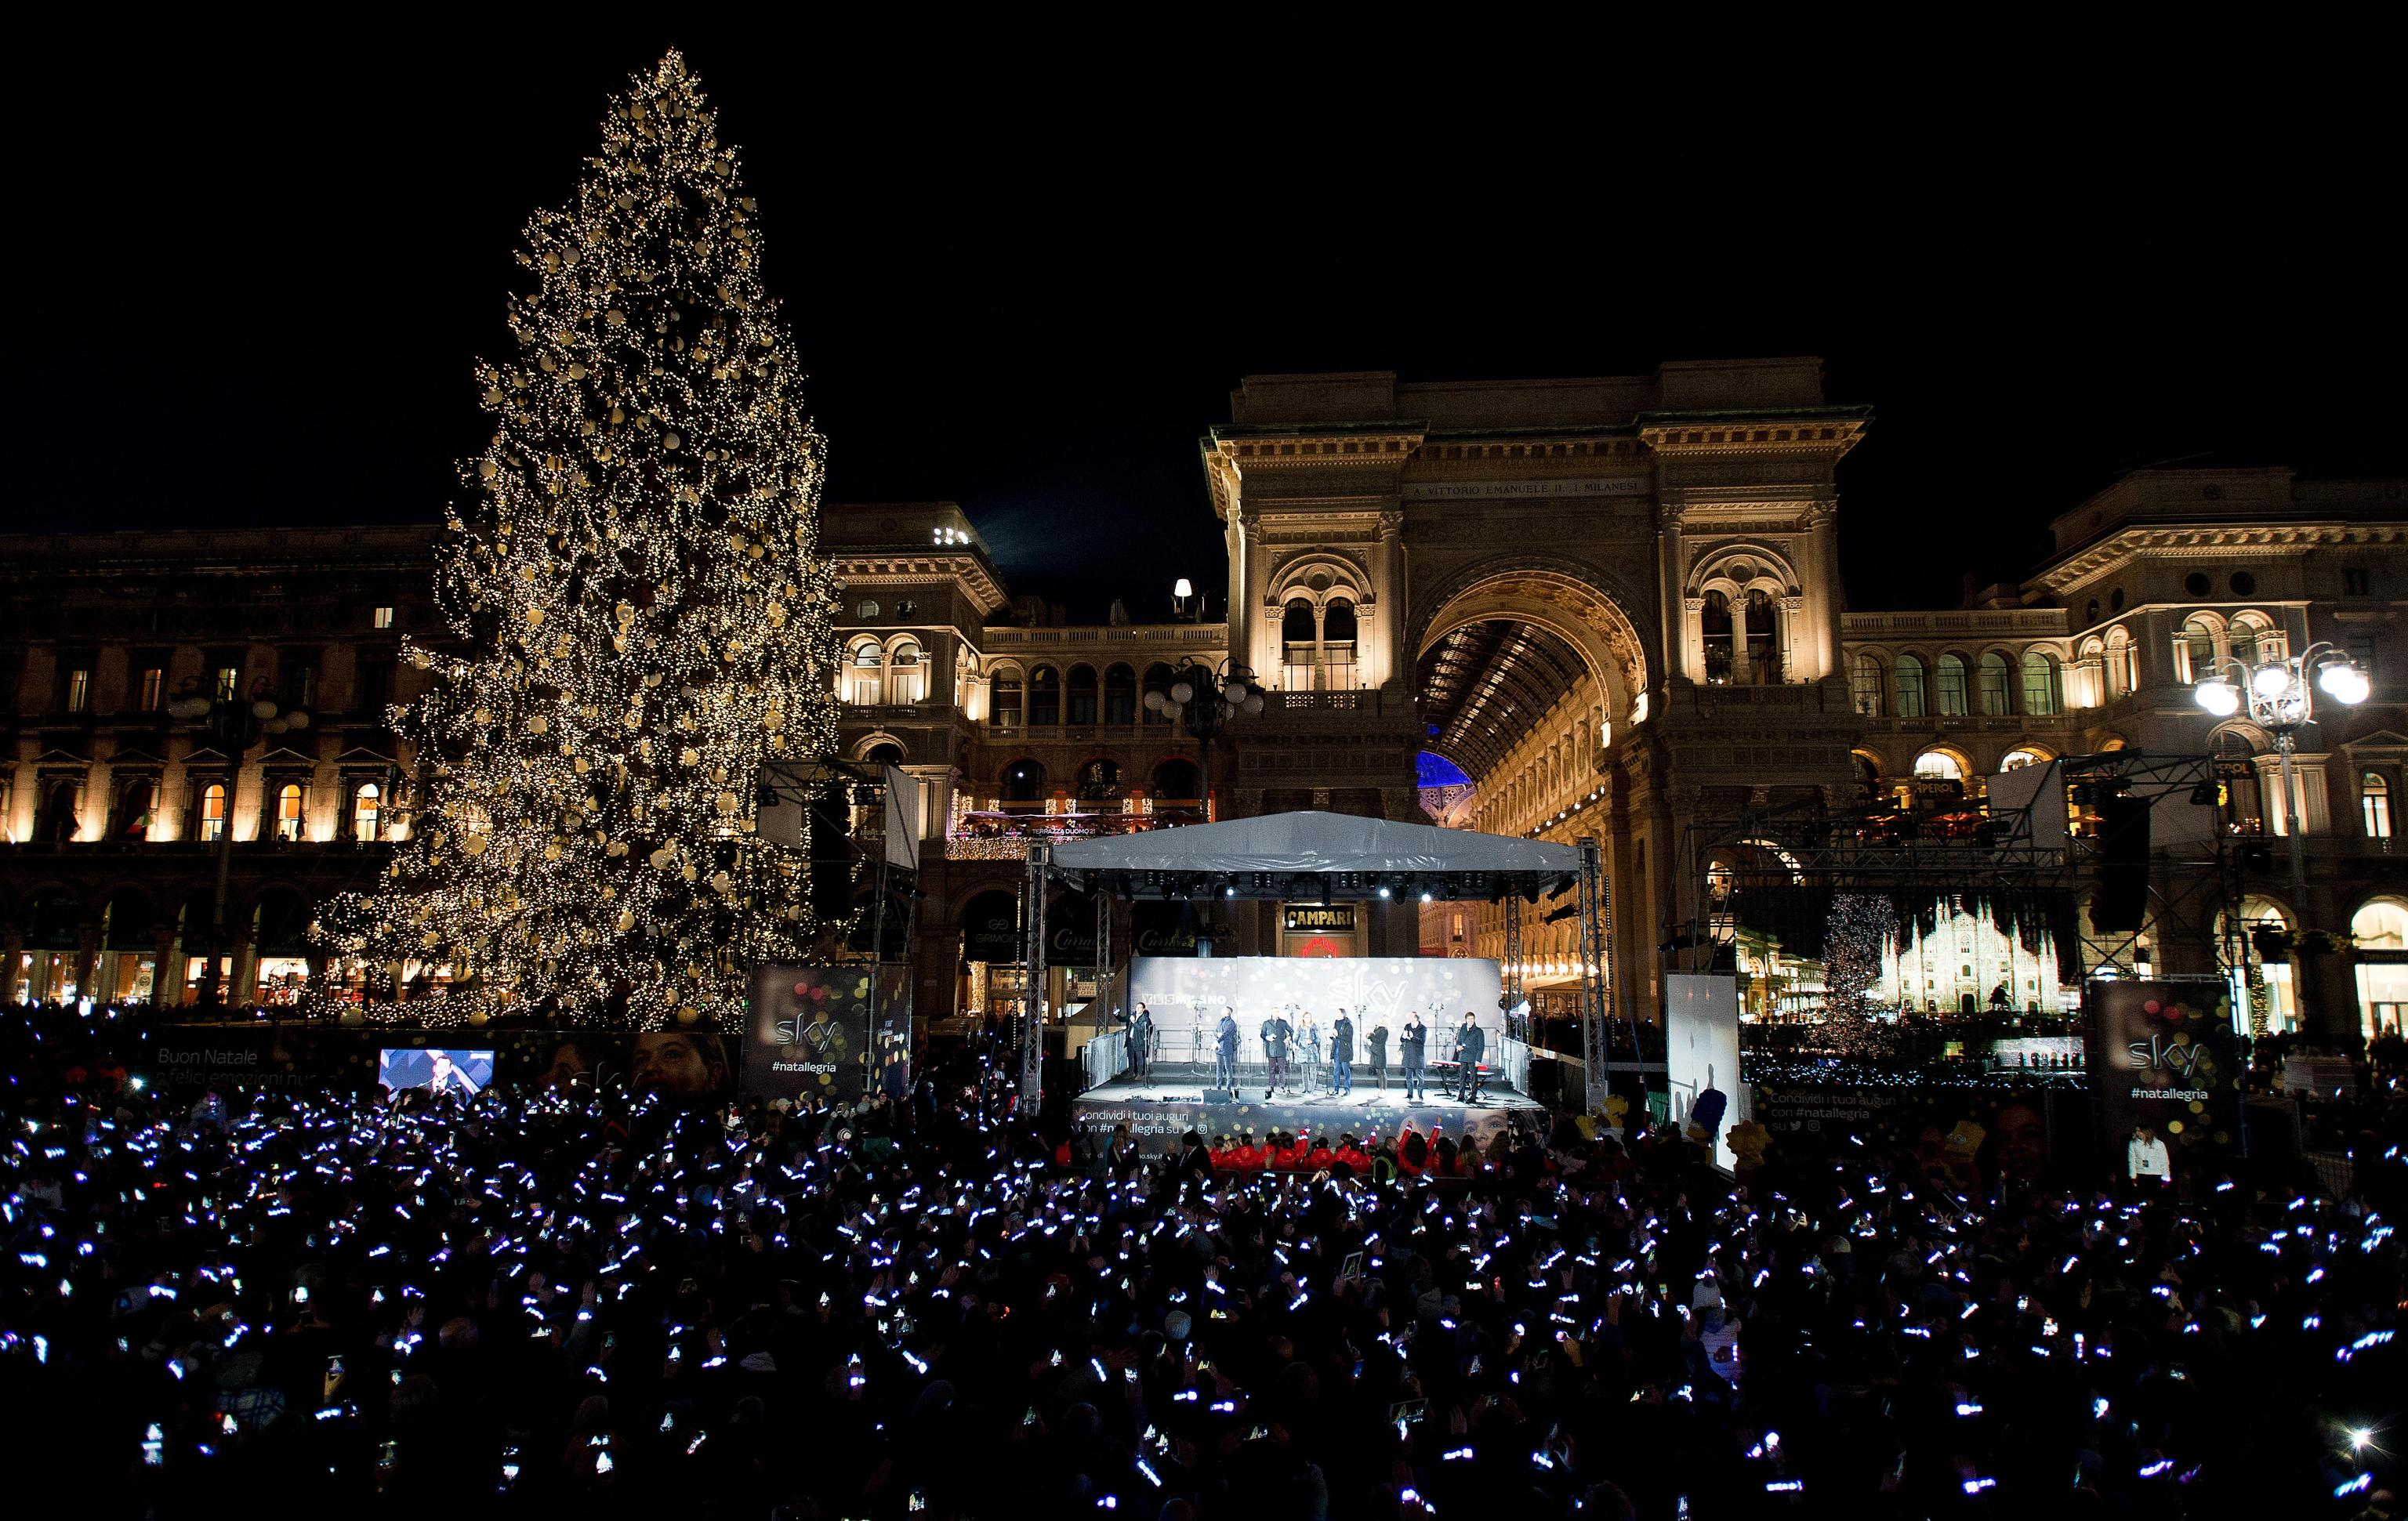 People attend the Christmas tree lighting ceremony at Duomo's square in Milan, Italy, 06 December 2017. ANSA/SKY PRESS OFFICE/JULE HERING +++ ANSA PROVIDES ACCESS TO THIS HANDOUT PHOTO TO BE USED SOLELY TO ILLUSTRATE NEWS REPORTING OR COMMENTARY ON THE FACTS OR EVENTS DEPICTED IN THIS IMAGE; NO ARCHIVING; NO LICENSING +++